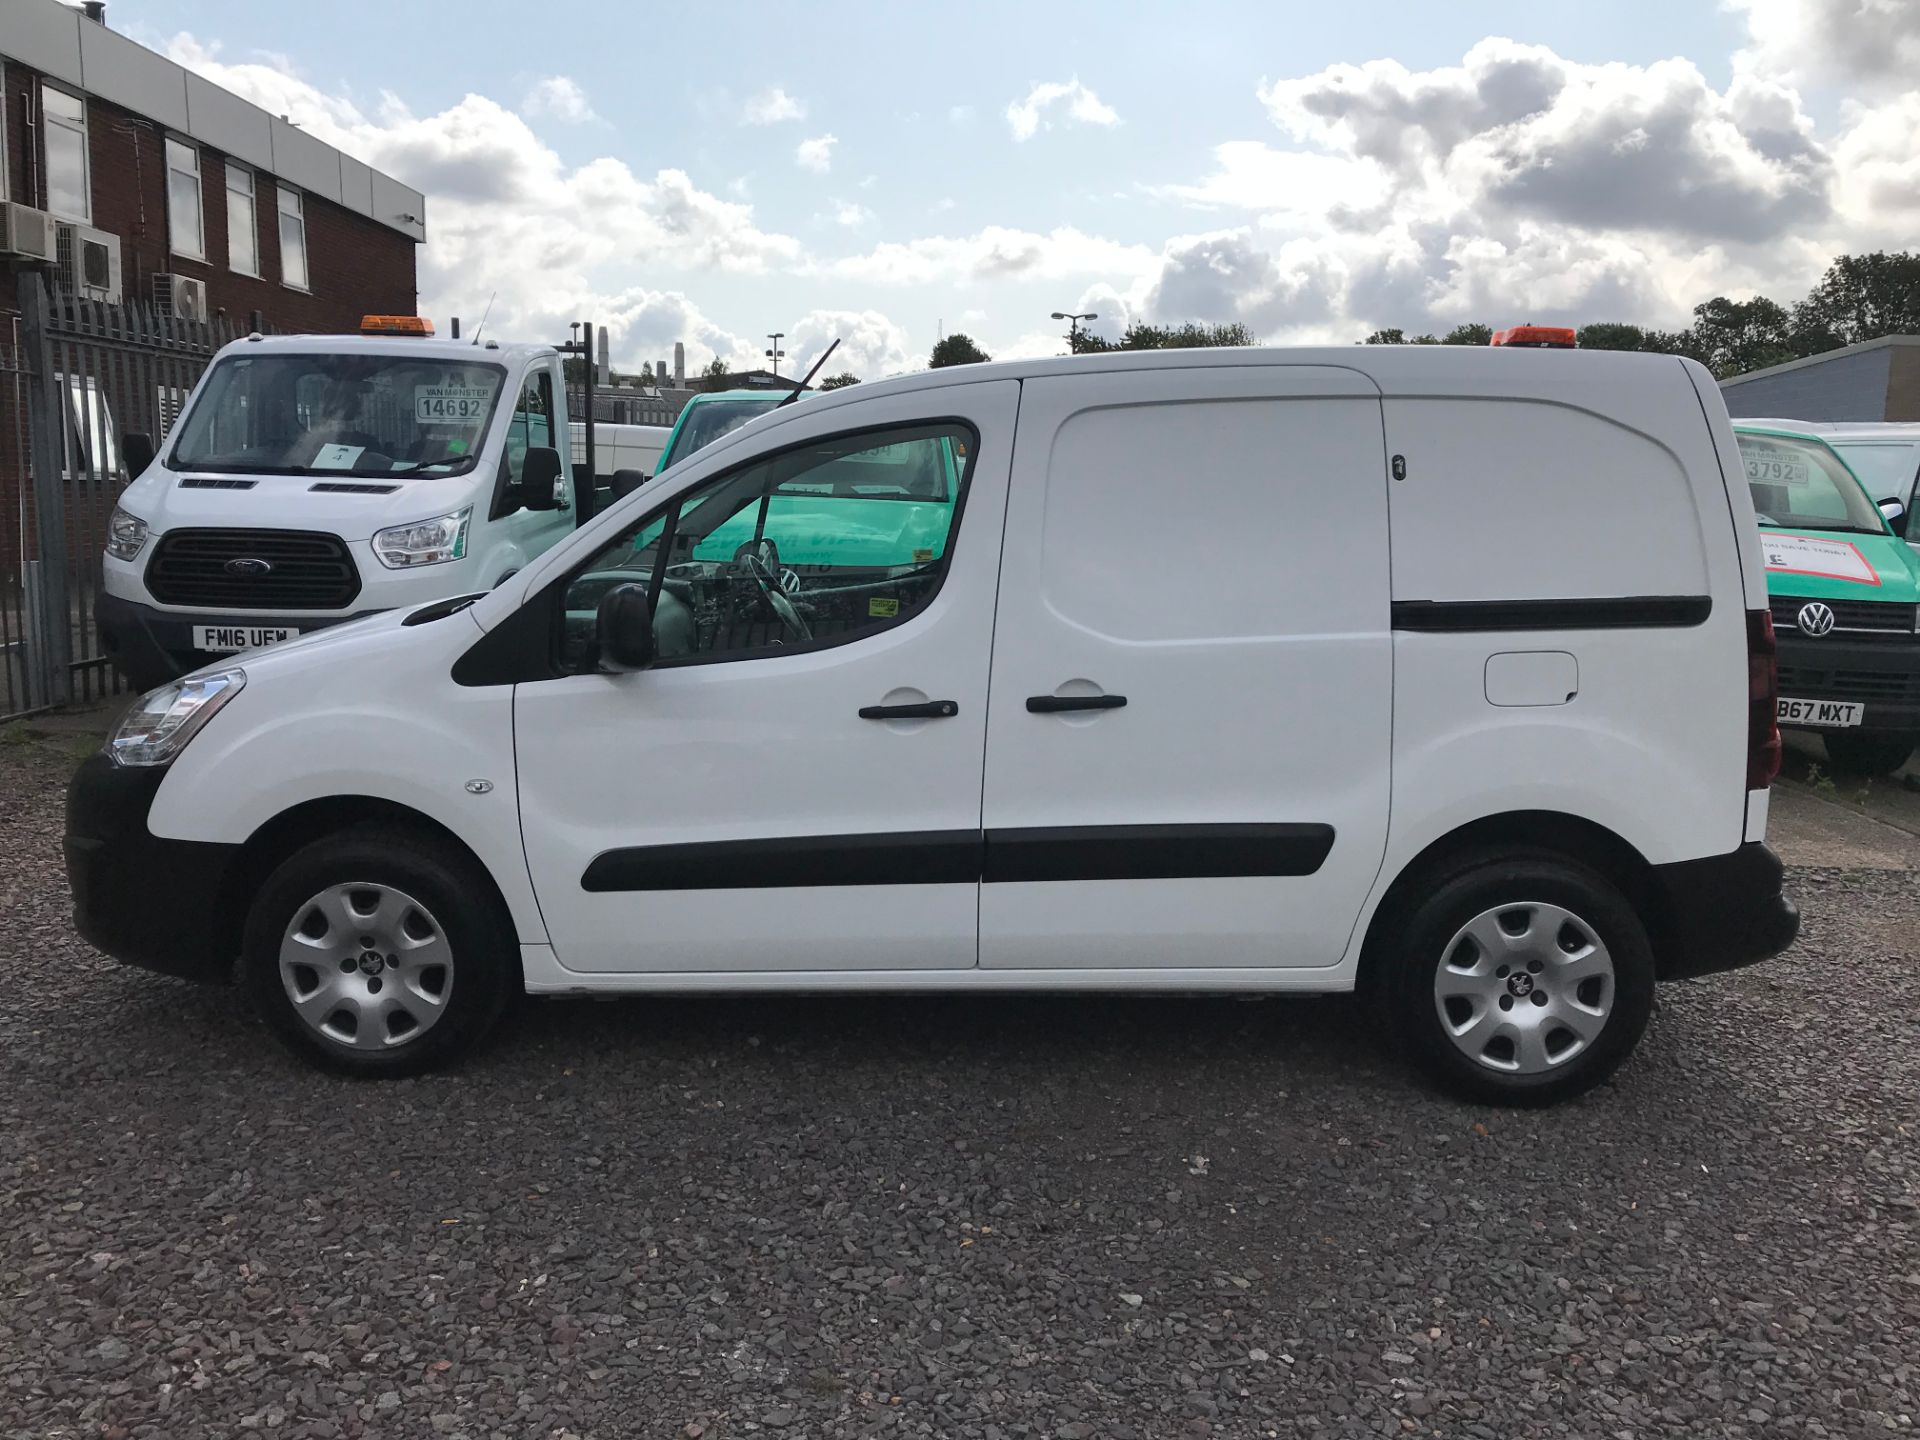 2016 Peugeot Partner L1 850 S 1.6 92PS (SLD) PROFESSIONAL 3 SEATS EURO 5  (OY16ZWS) Image 7